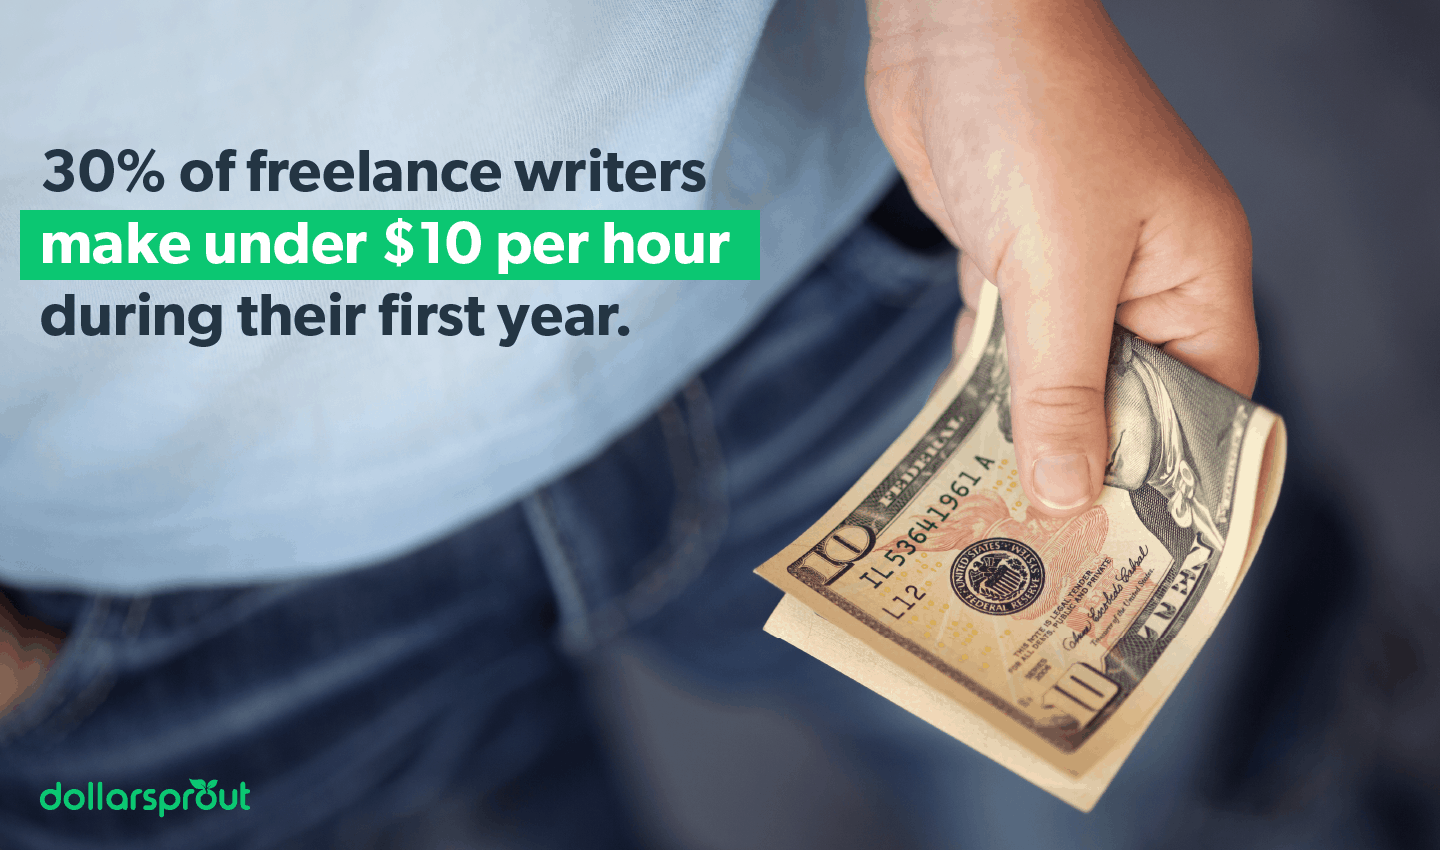 freelance writers make under $10 per hour